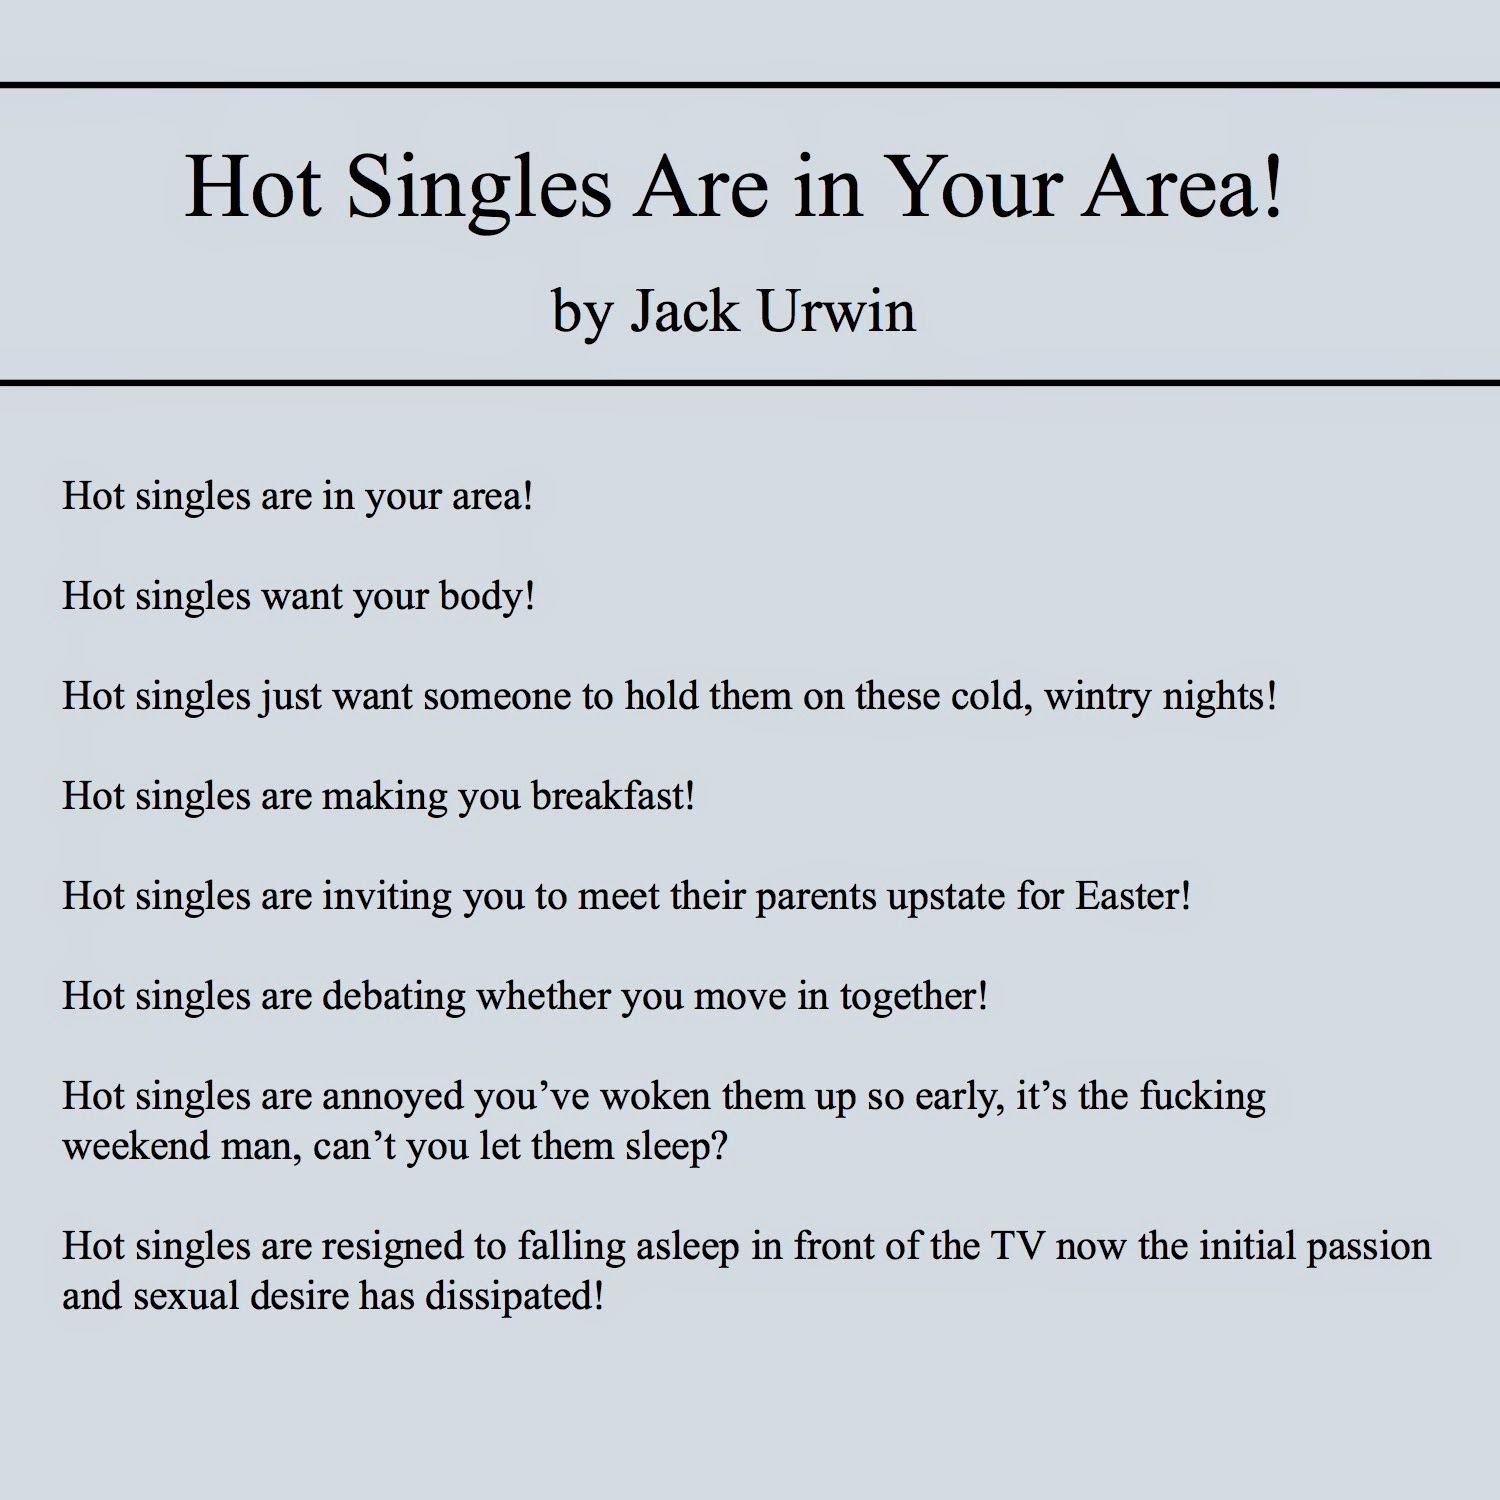 Hot Singles Are in Your Area! by Jack Urwin pt. 1